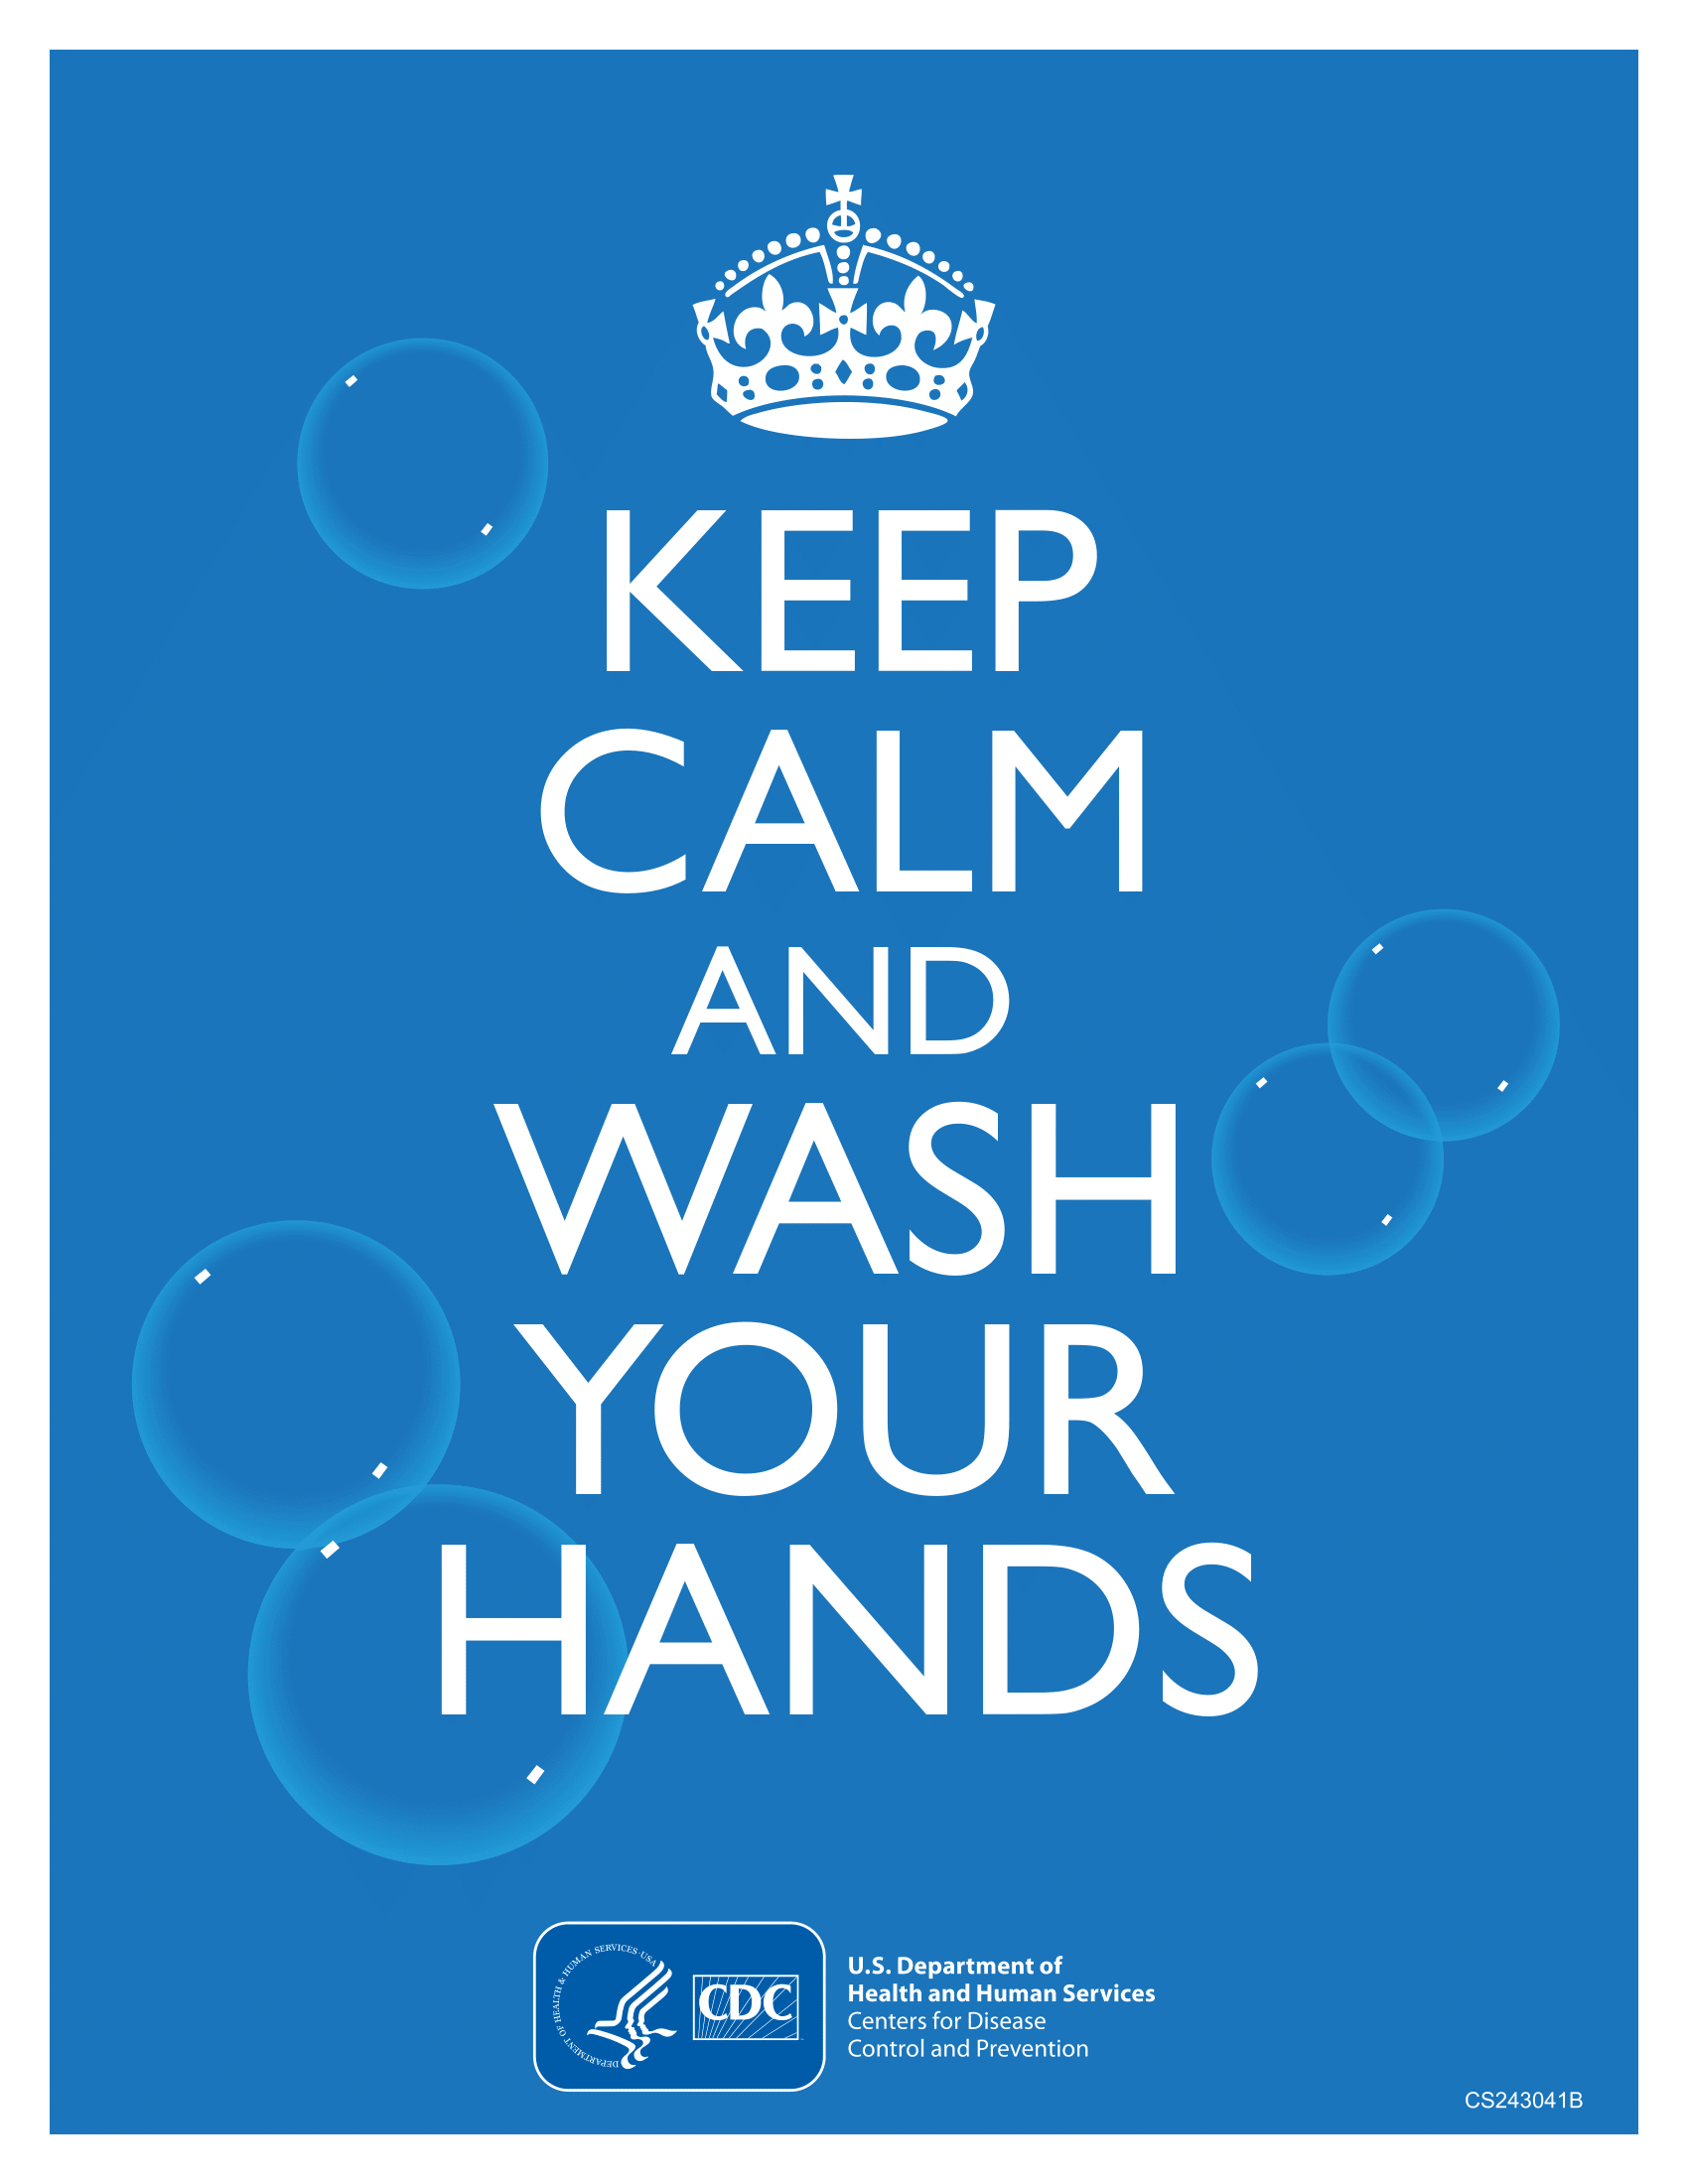 Keep calm wash your hands